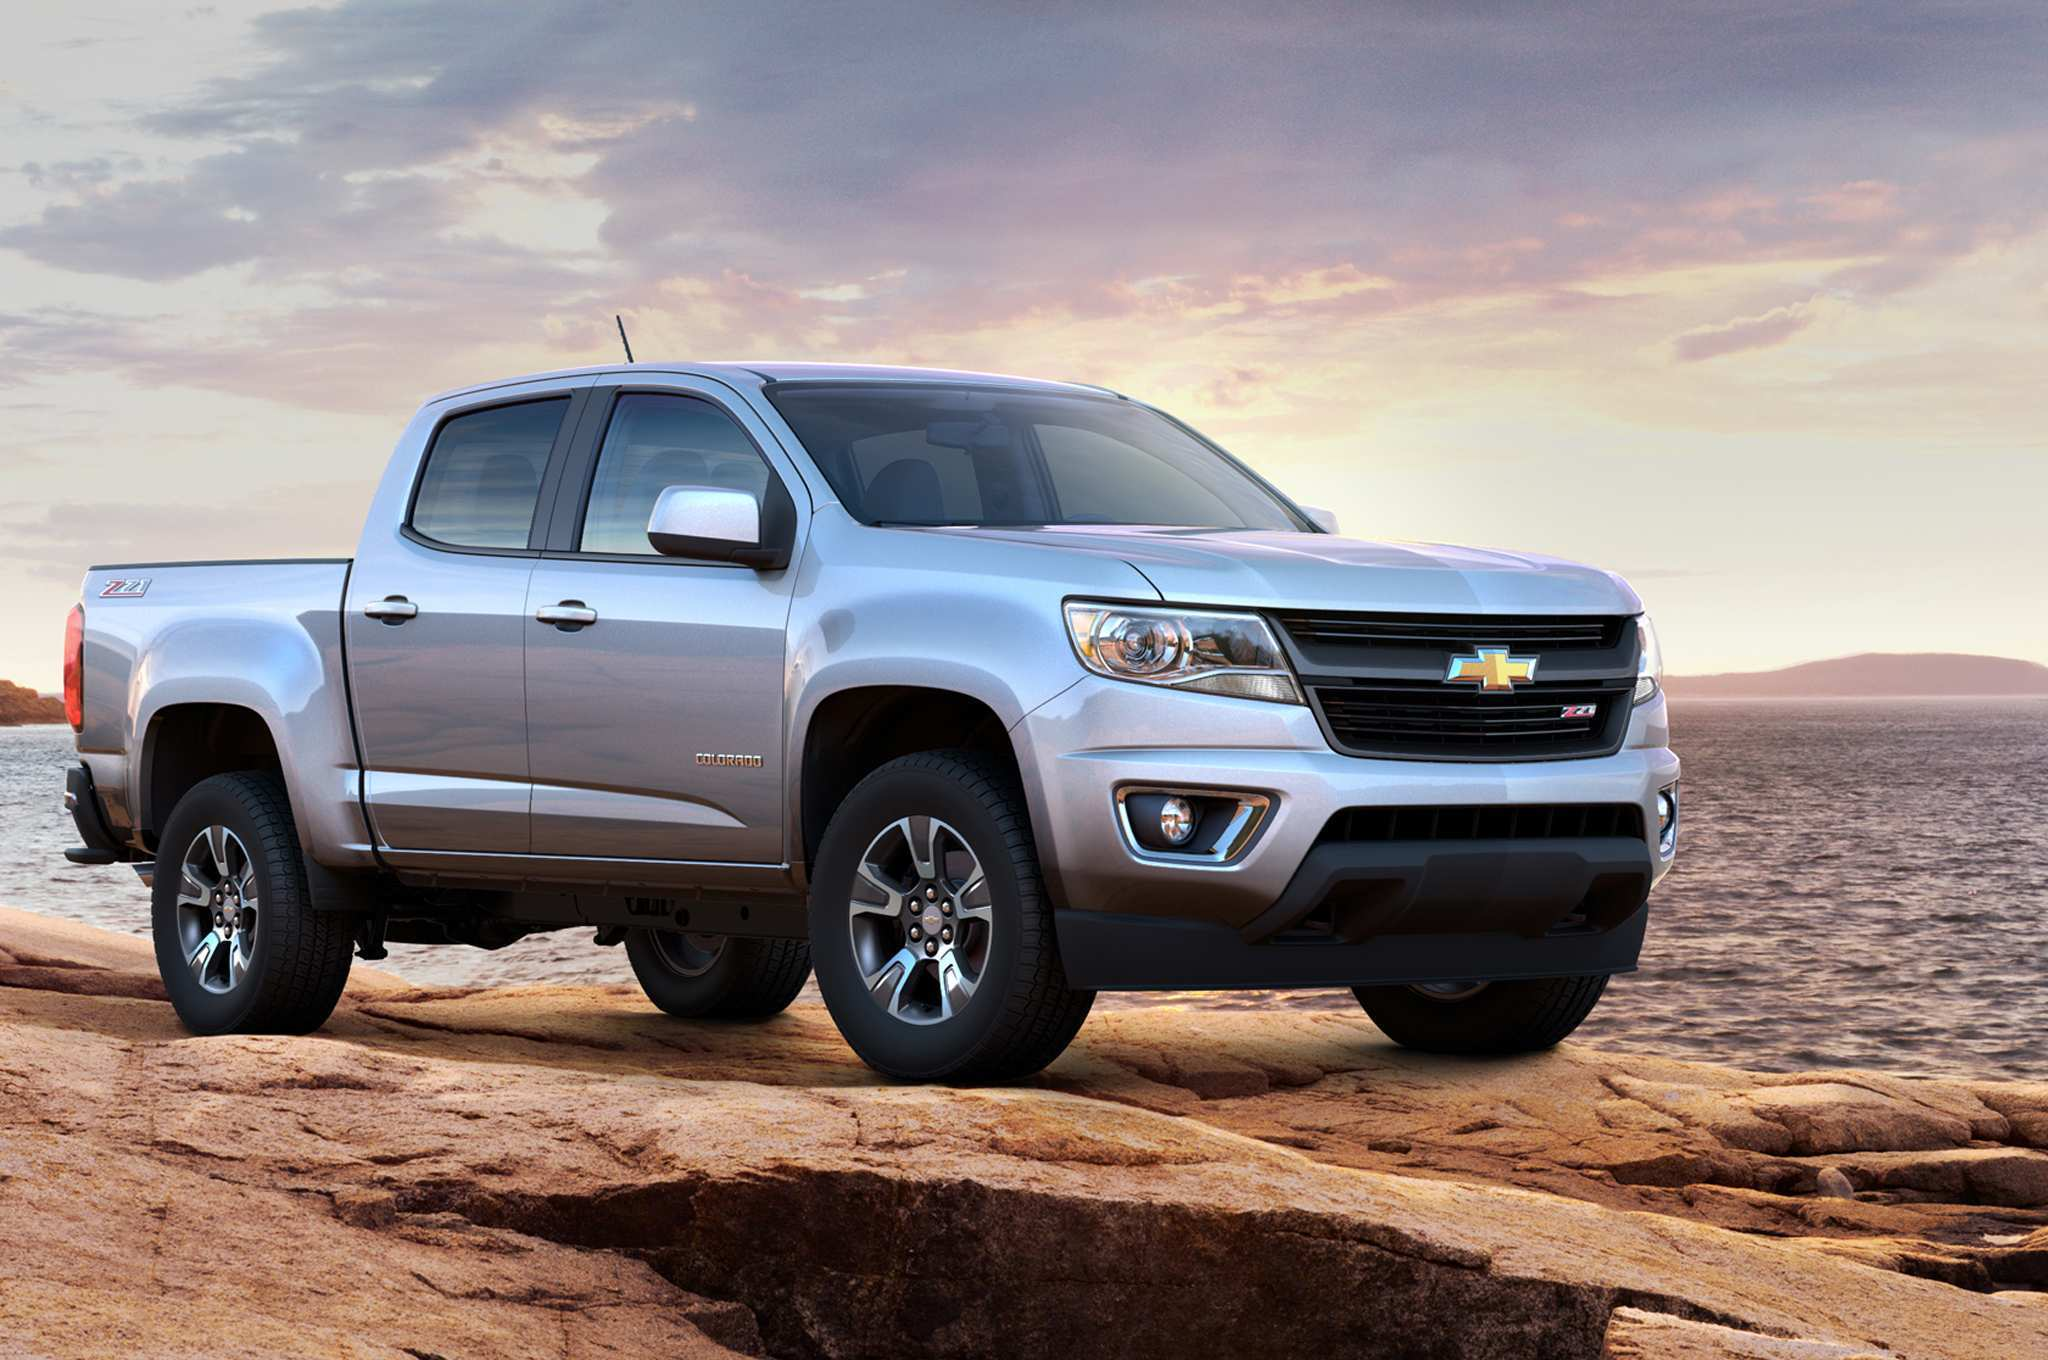 70 A 2019 Chevy Colorado Going Launched Soon Picture